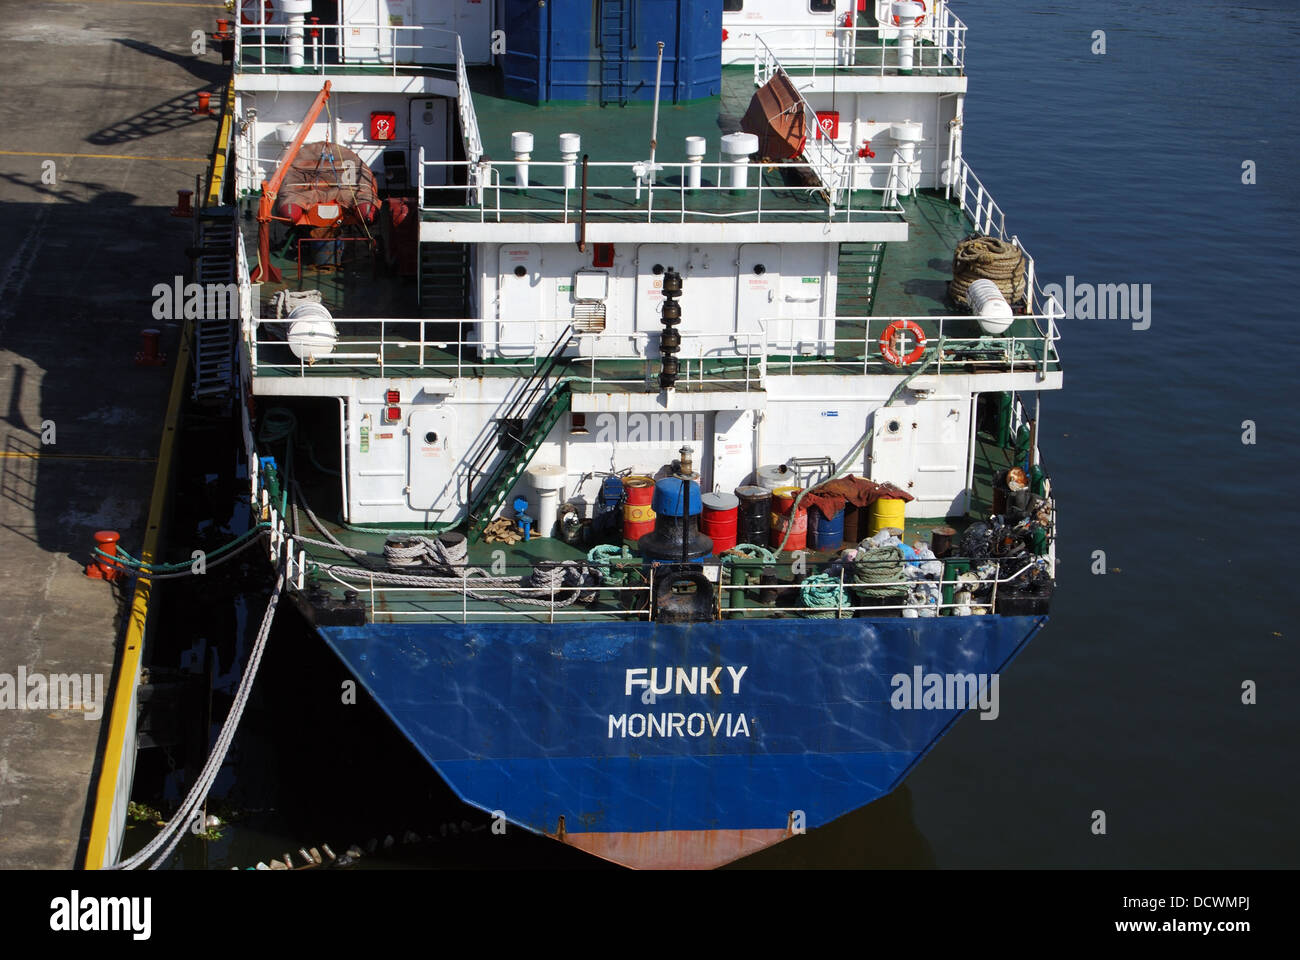 Stern of the cargo ship 'Funky' along the quayside in Santo Domingo, Dominican Republic, Caribbean. - Stock Image